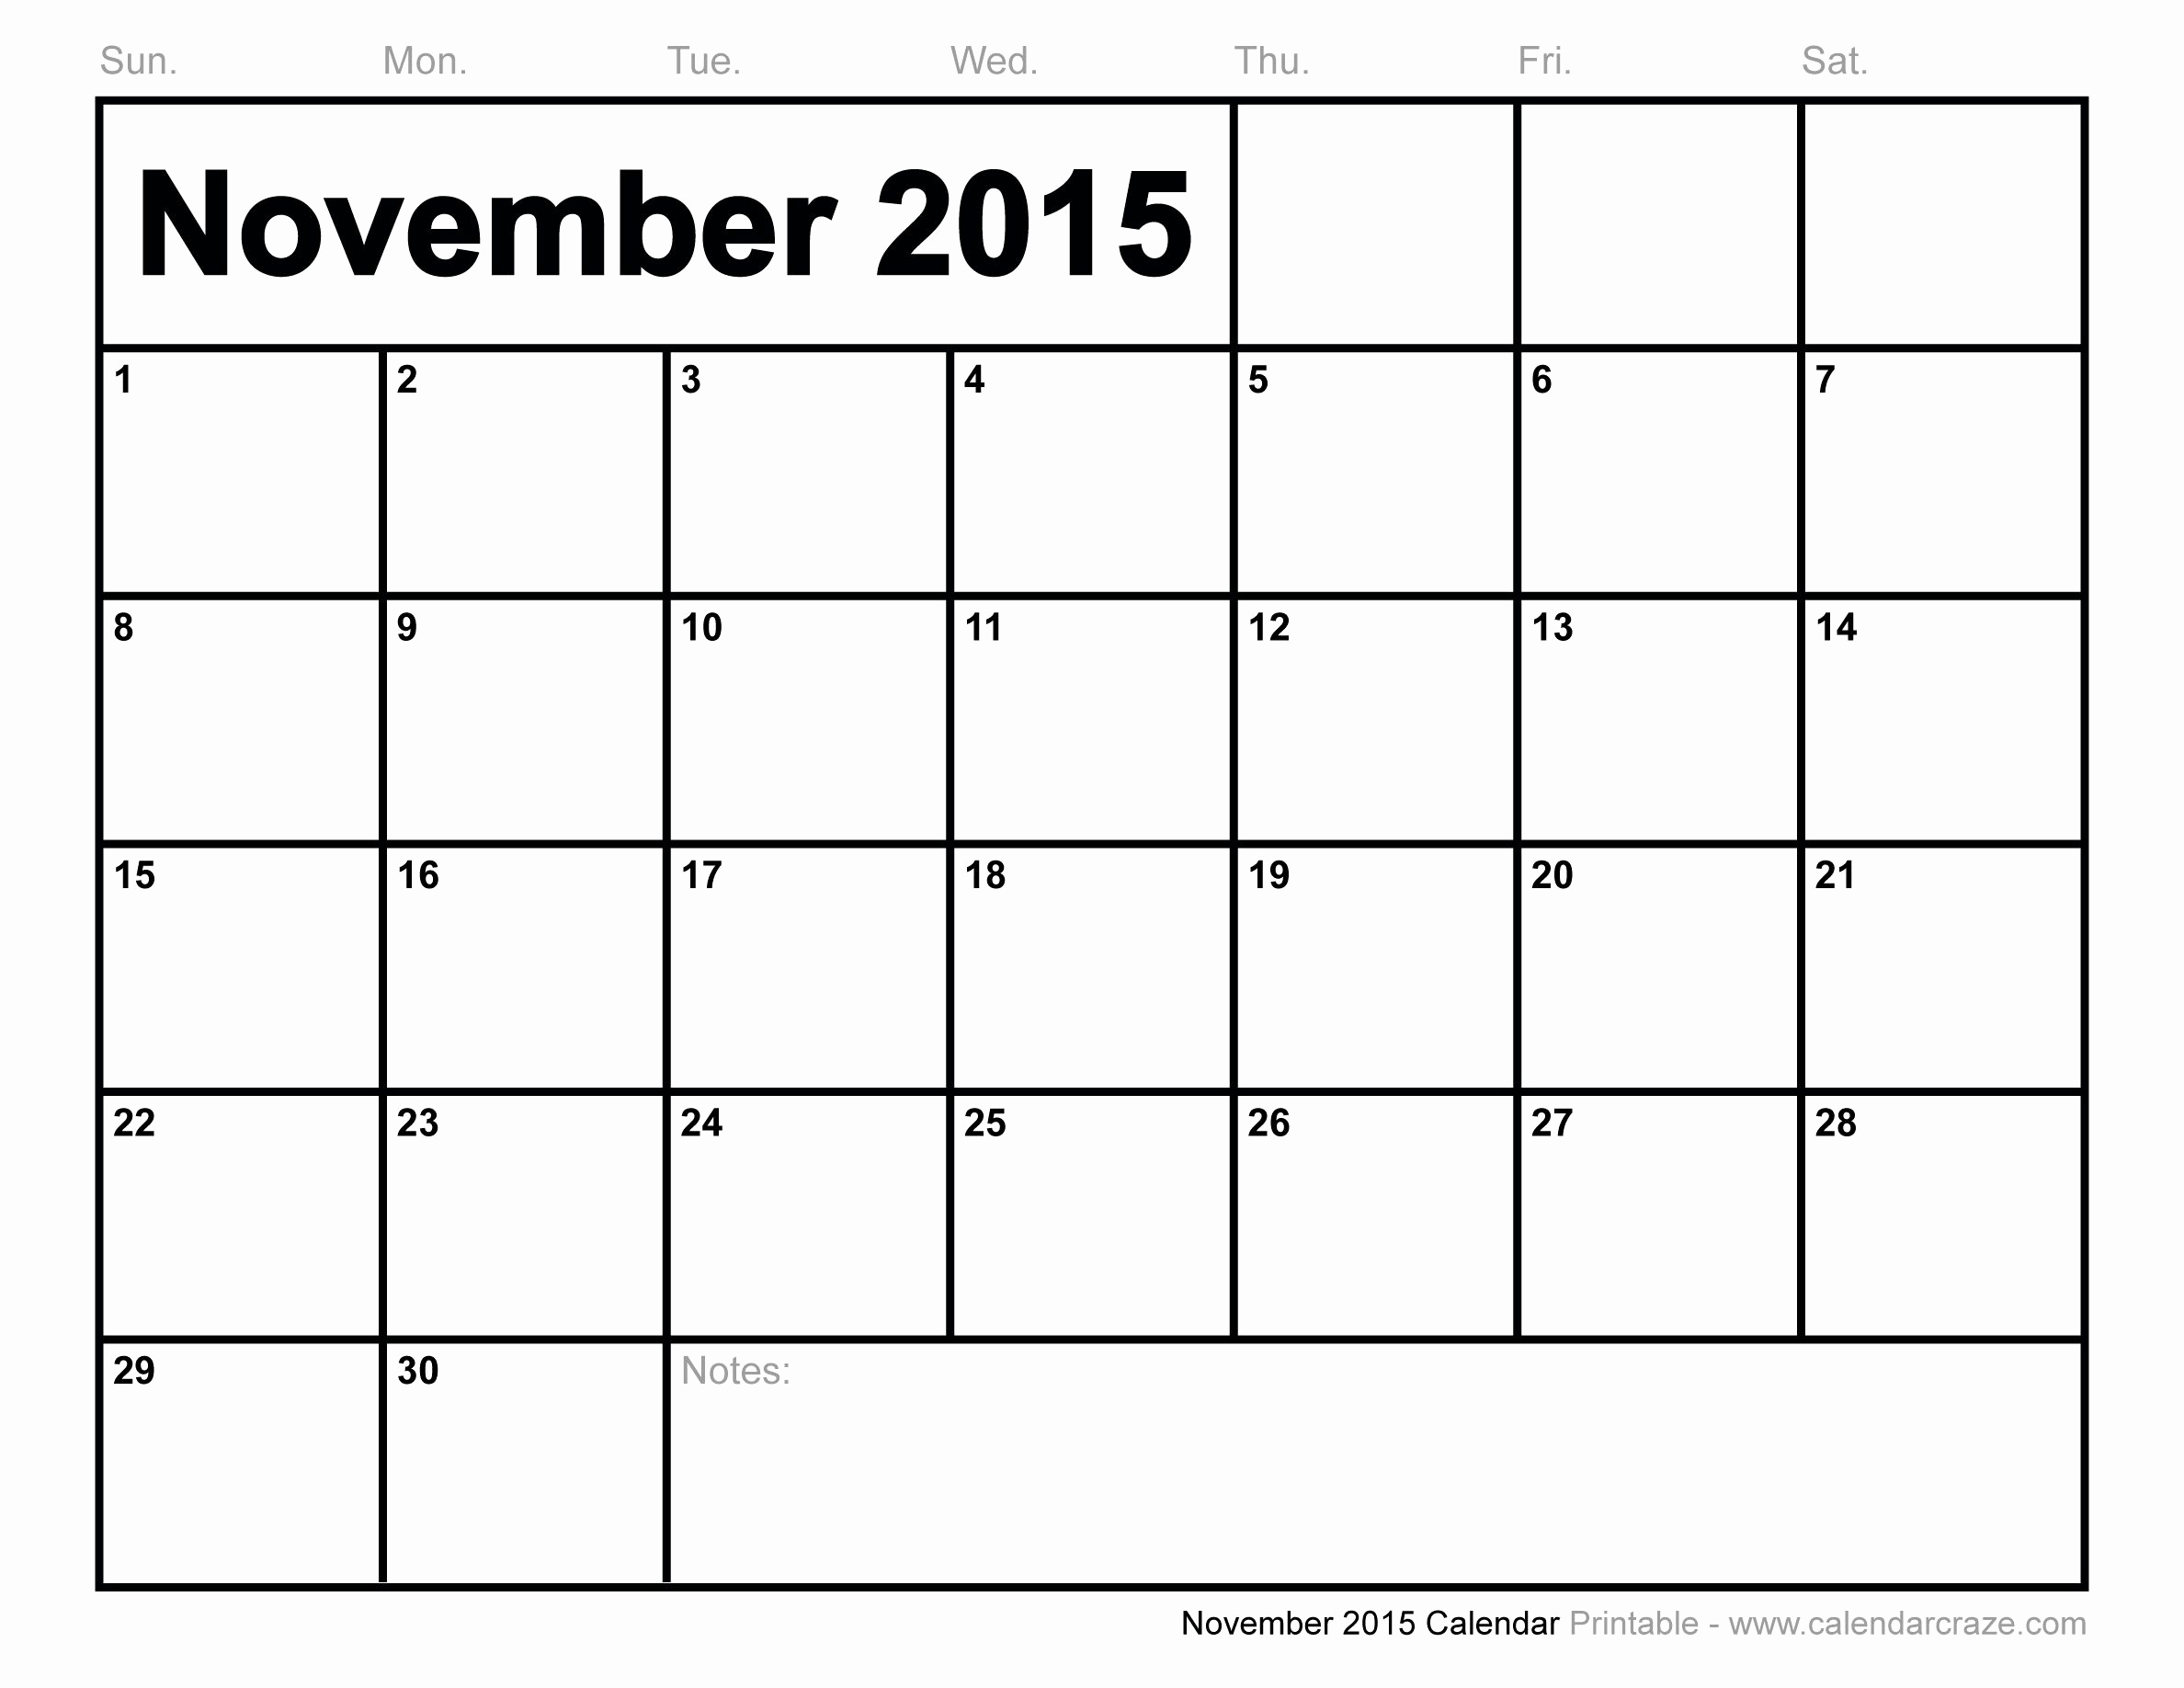 Blank Monthly Calendar Template Pdf New Feel Free to Download Nov 2015 Calendar with Holidays and